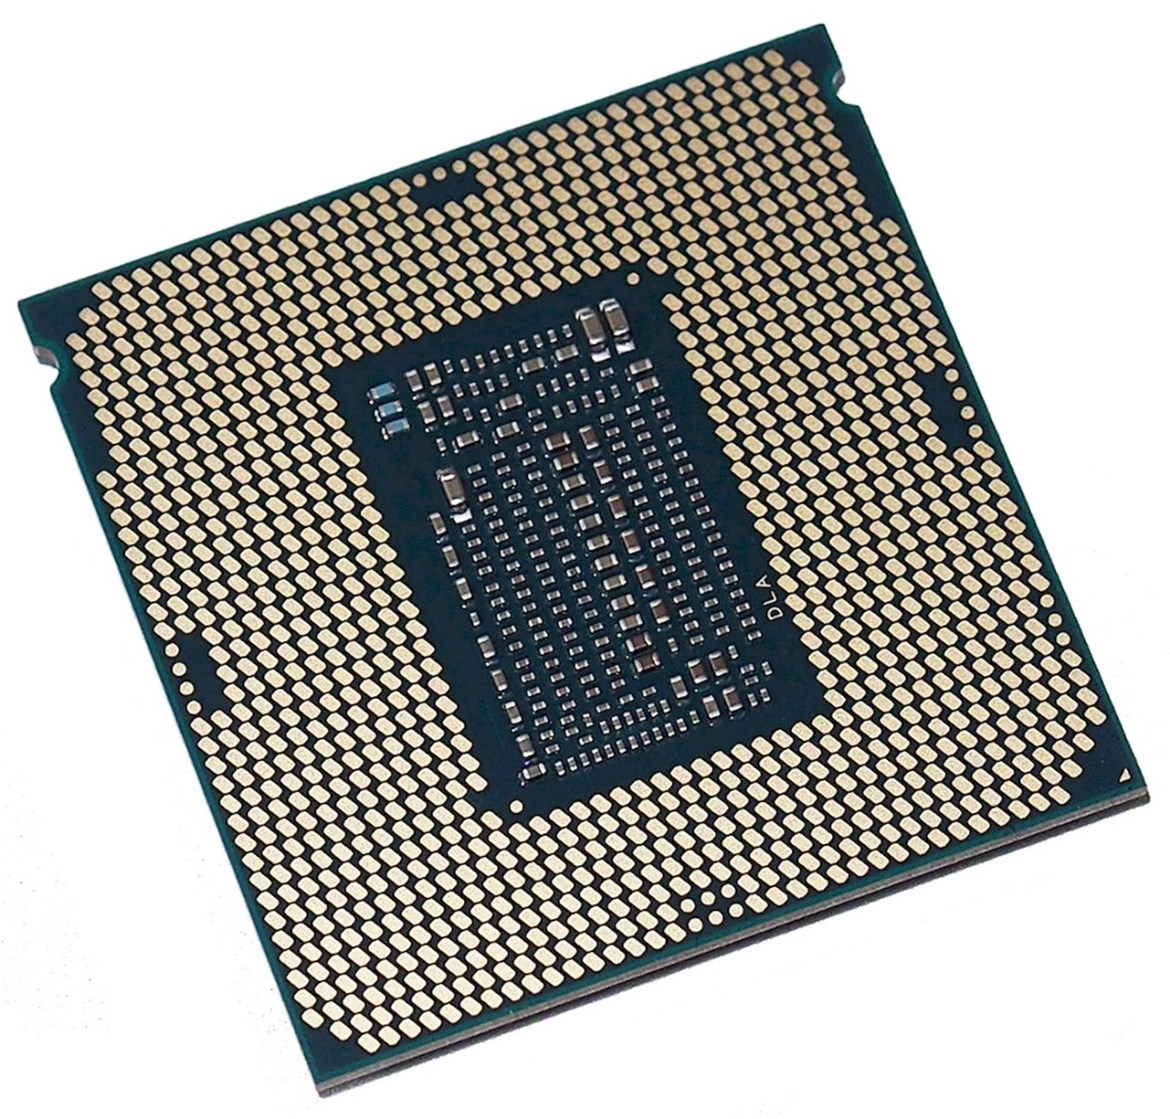 big_core-i9-9900k-bottom.jpg